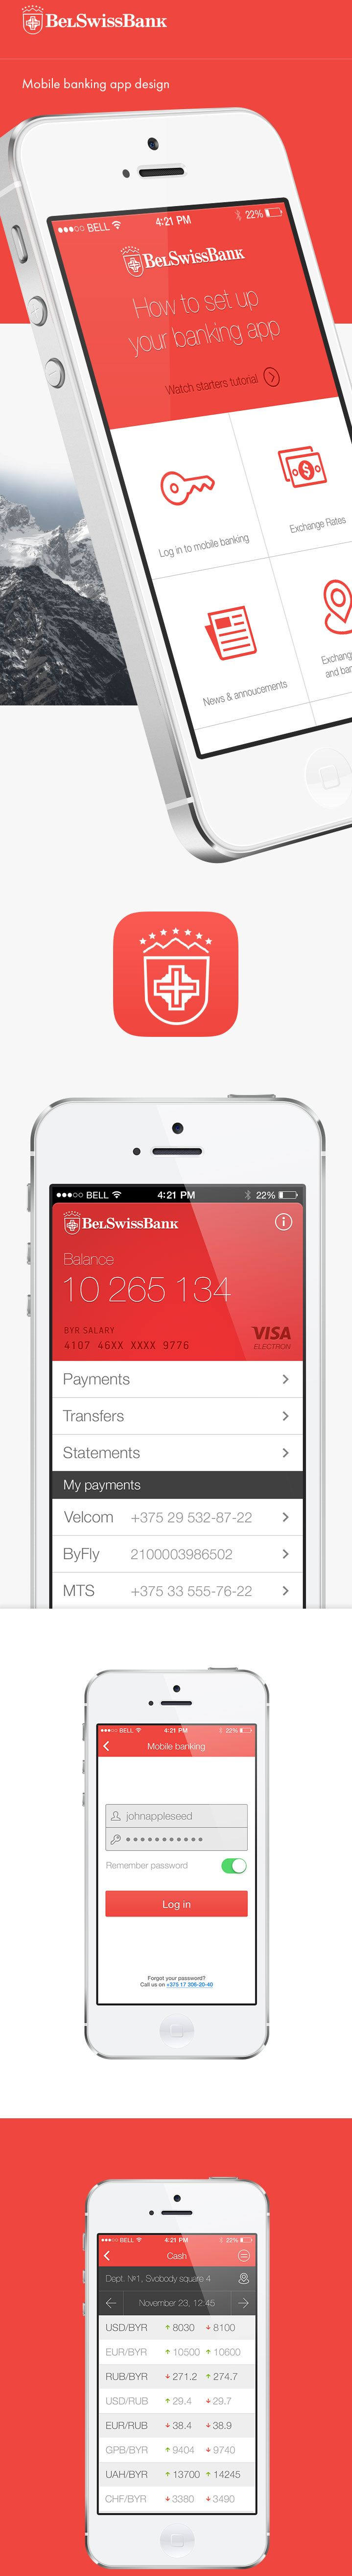 Mobile banking app design #mobile #ui #webdesign #layout #design